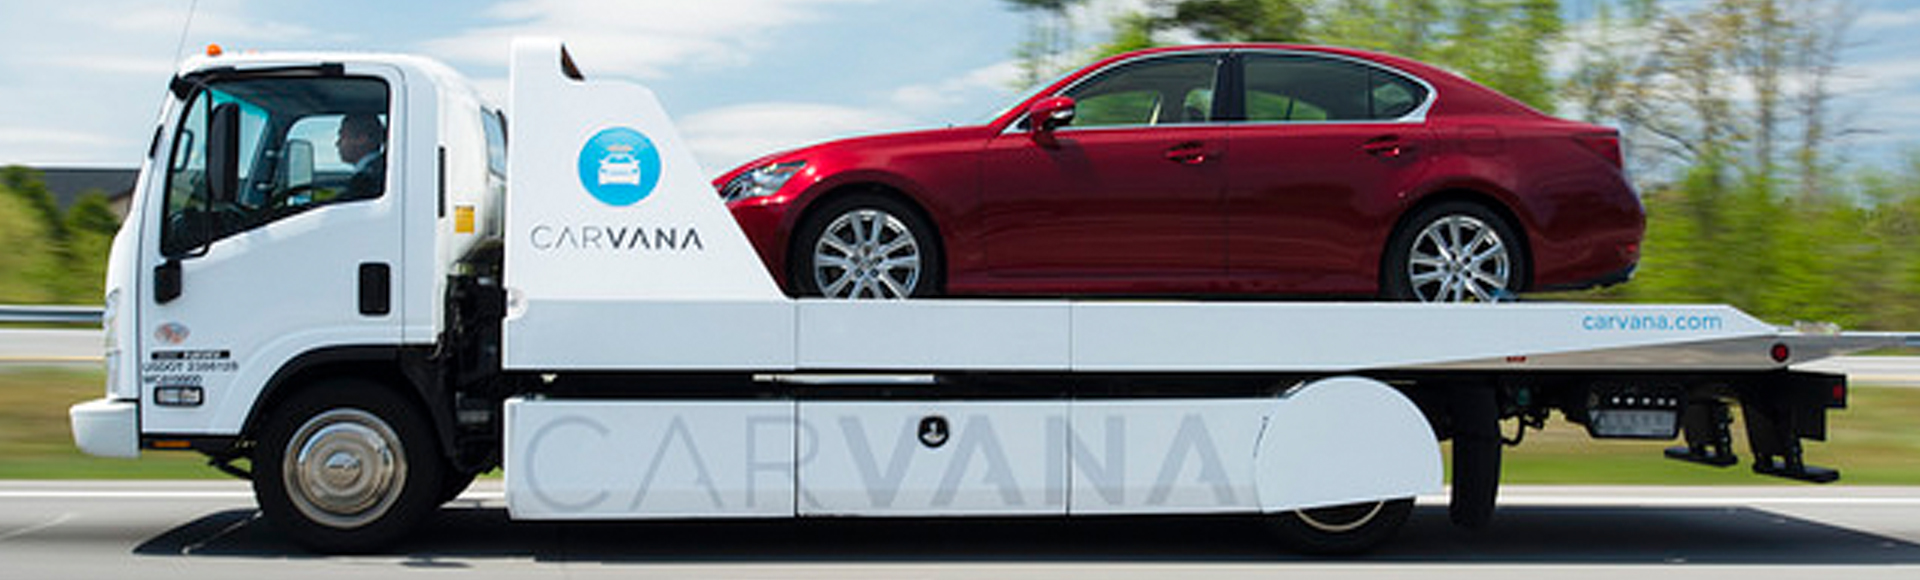 Carvana_internal_header_MayJune